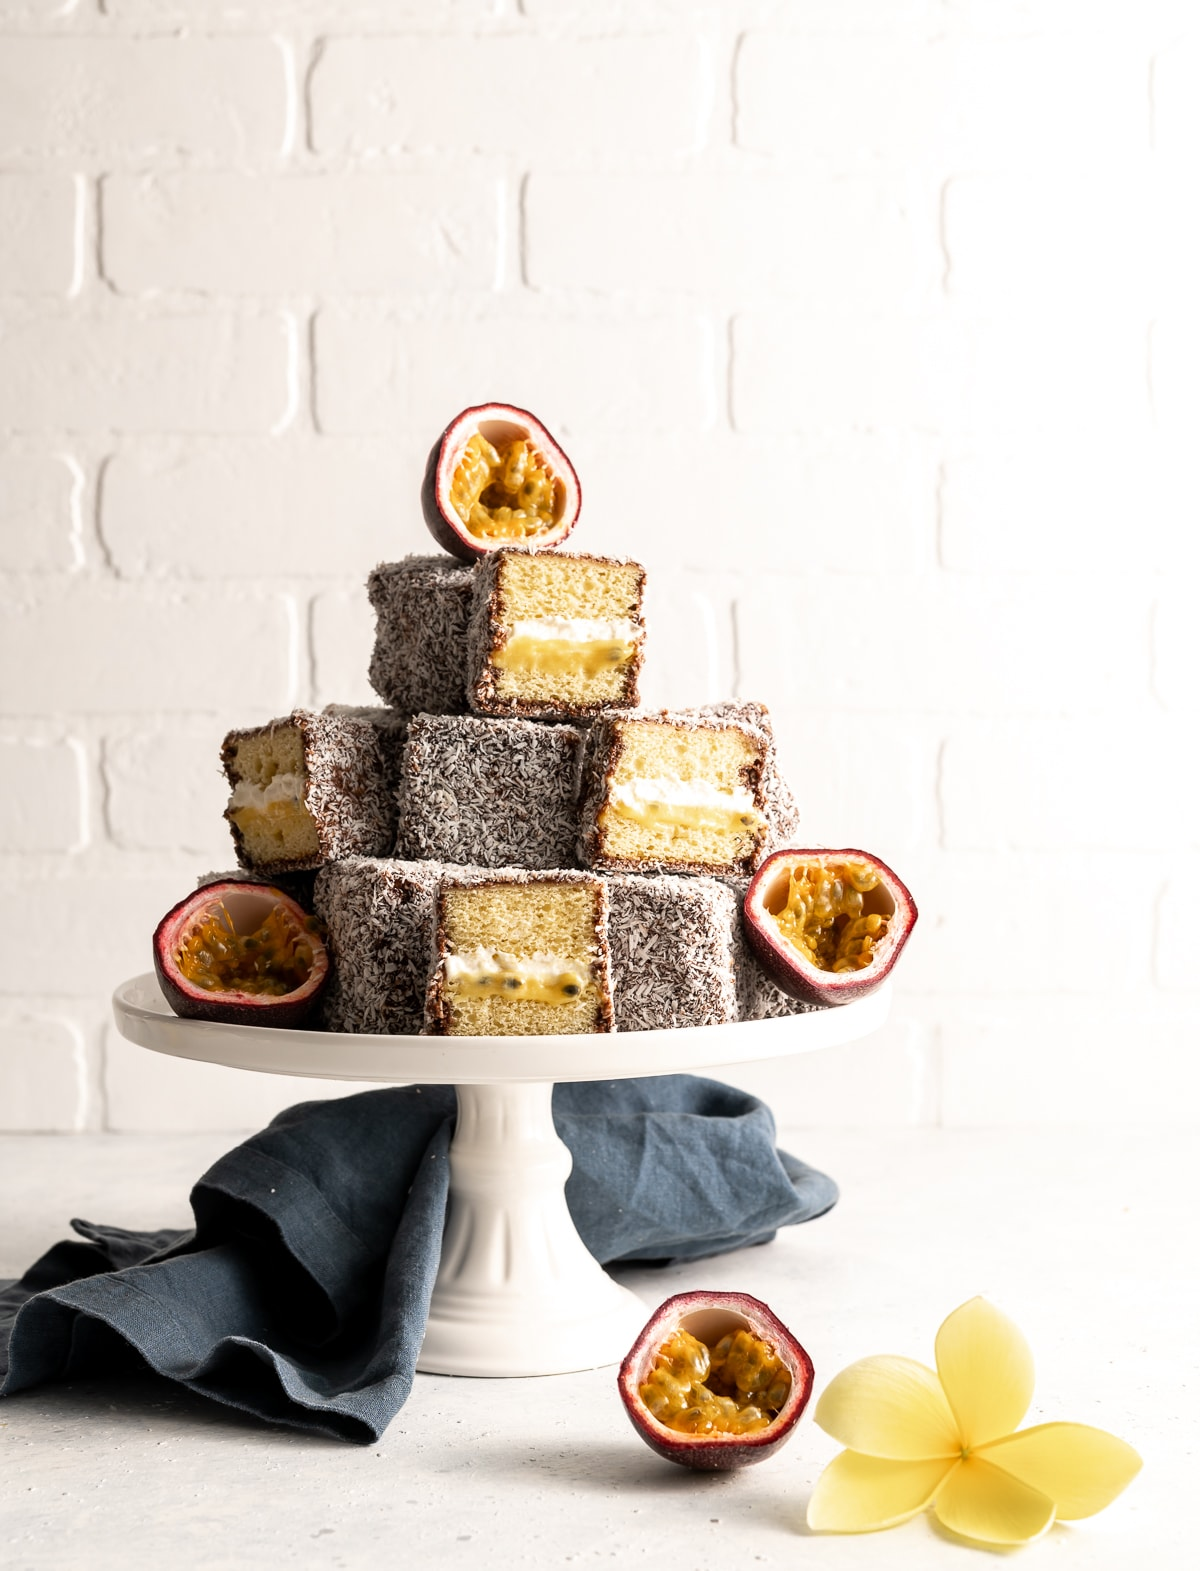 tower of lamingtons on a cake plate some whole some cut in half fresh passion fruit cut in half